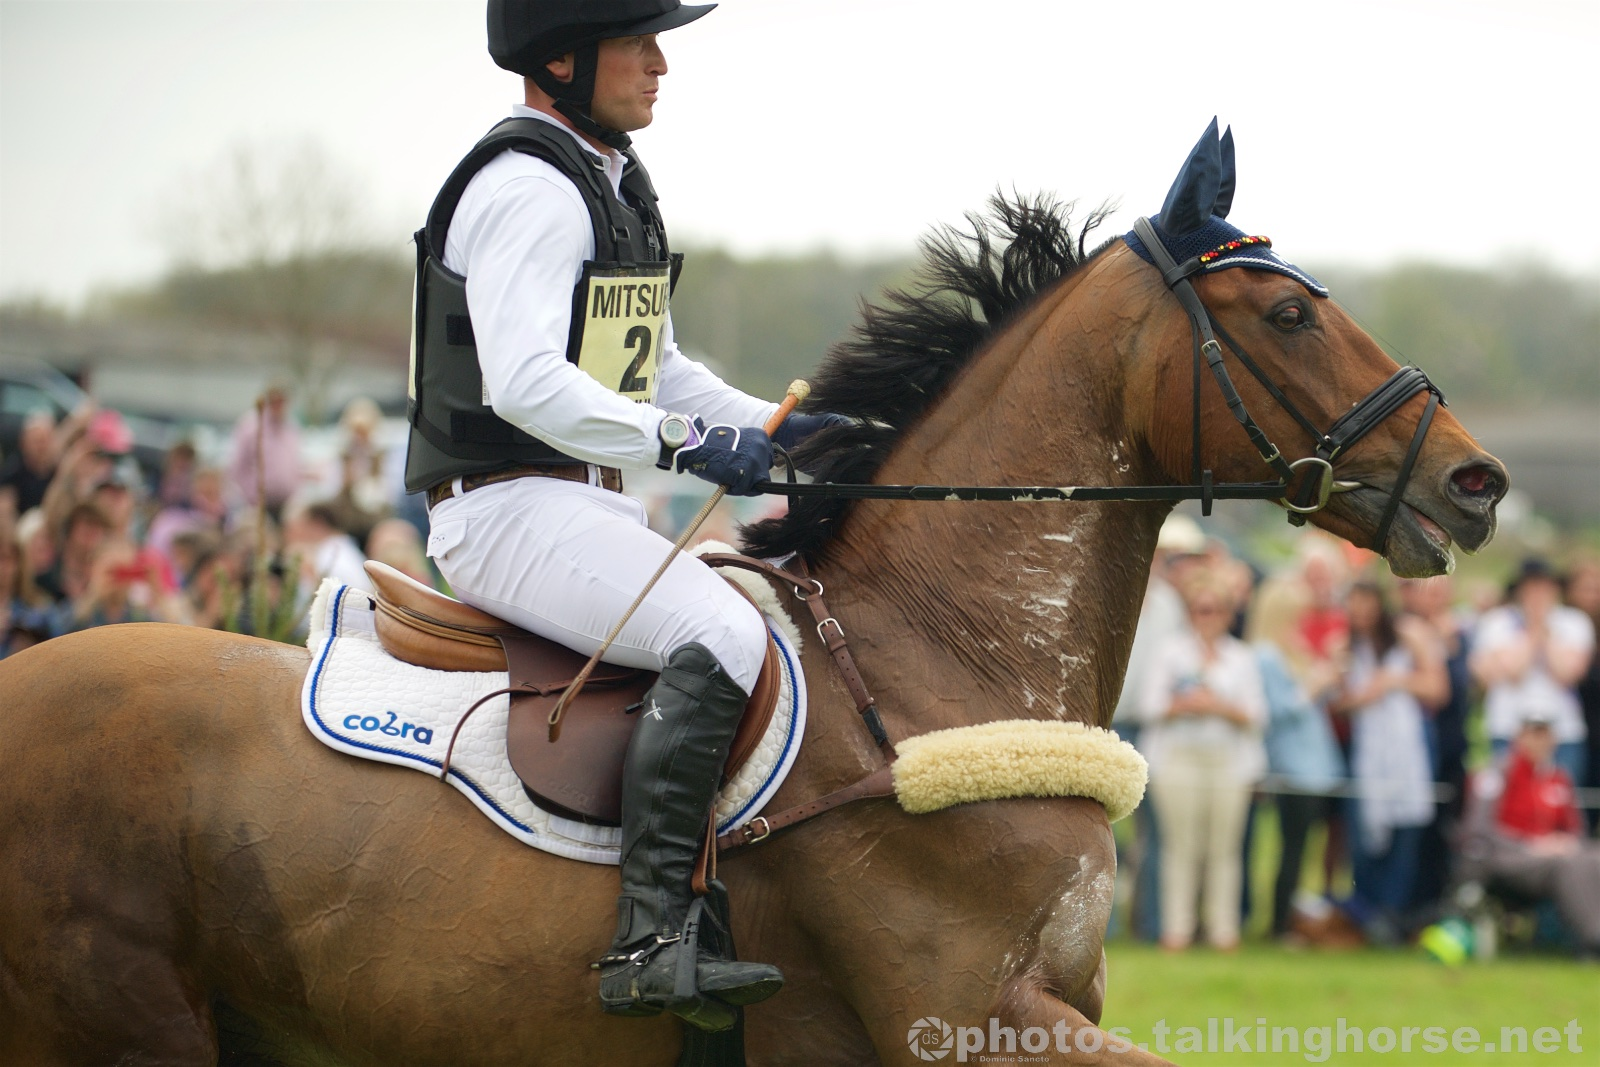 Michael Jung & La Biosthetique - Sam FBW - Rolex Grand Slam Winner - Badminton Horse Trials 2016